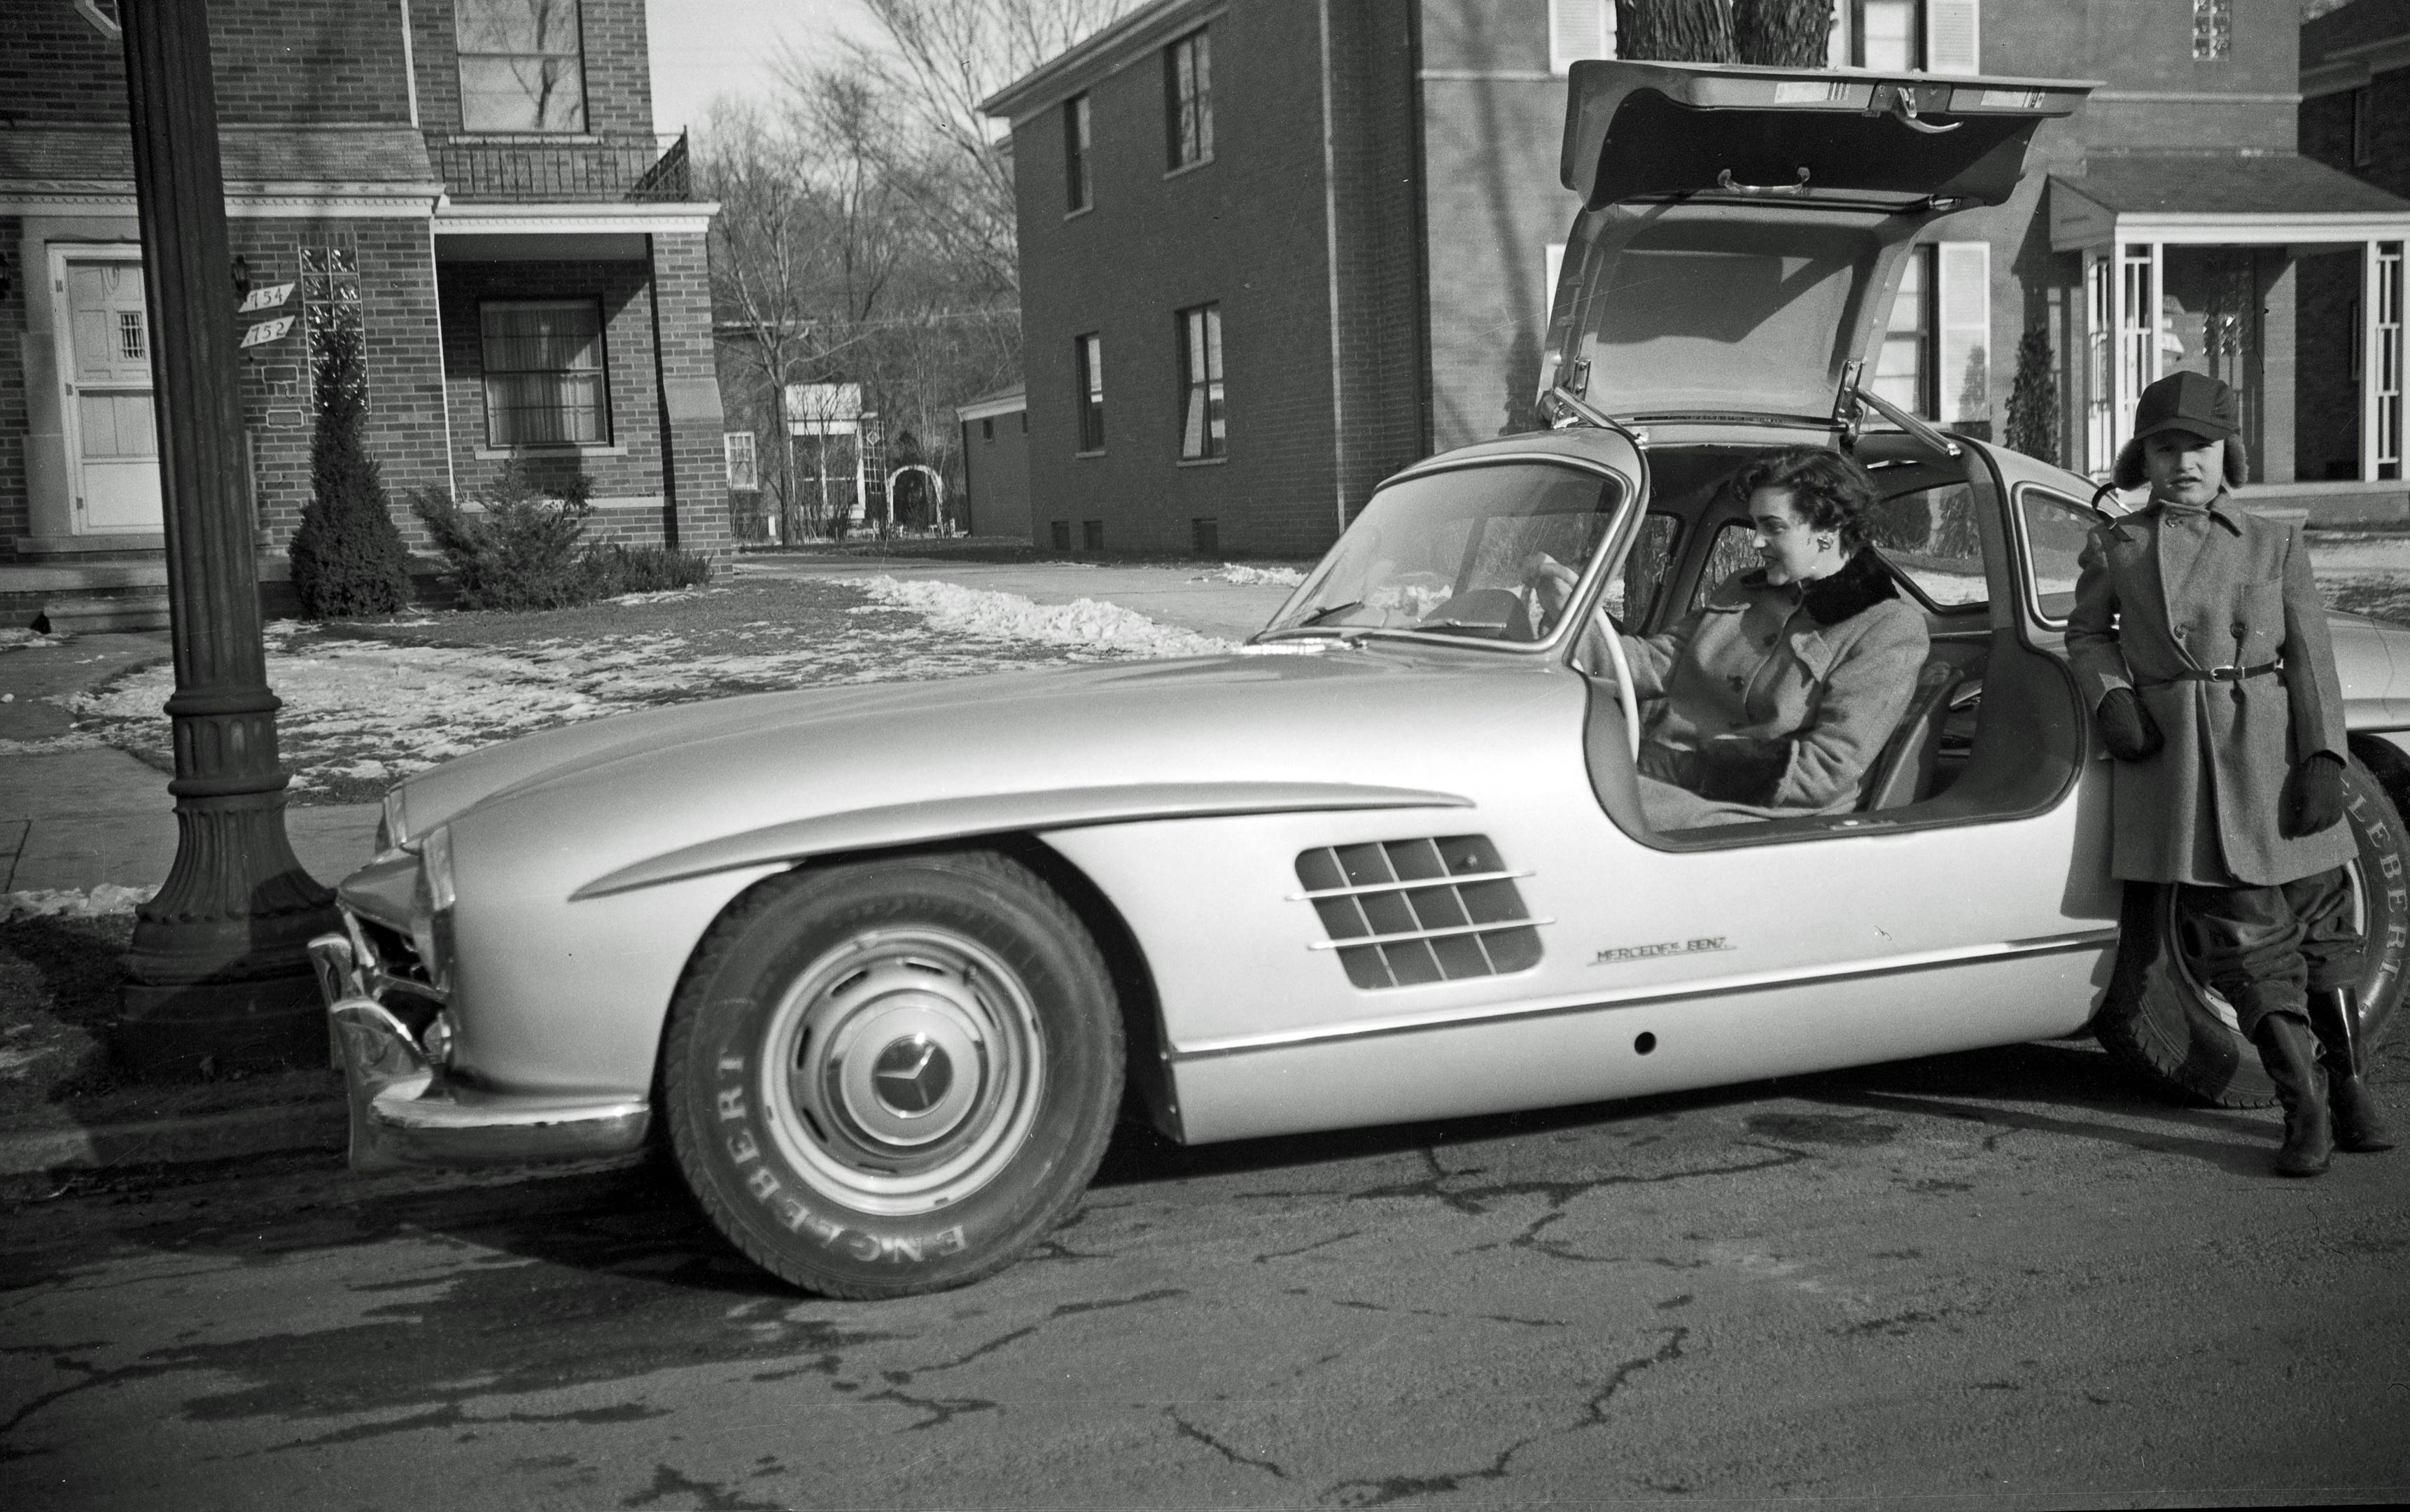 Frank Pringham with his mother and the 300 SL